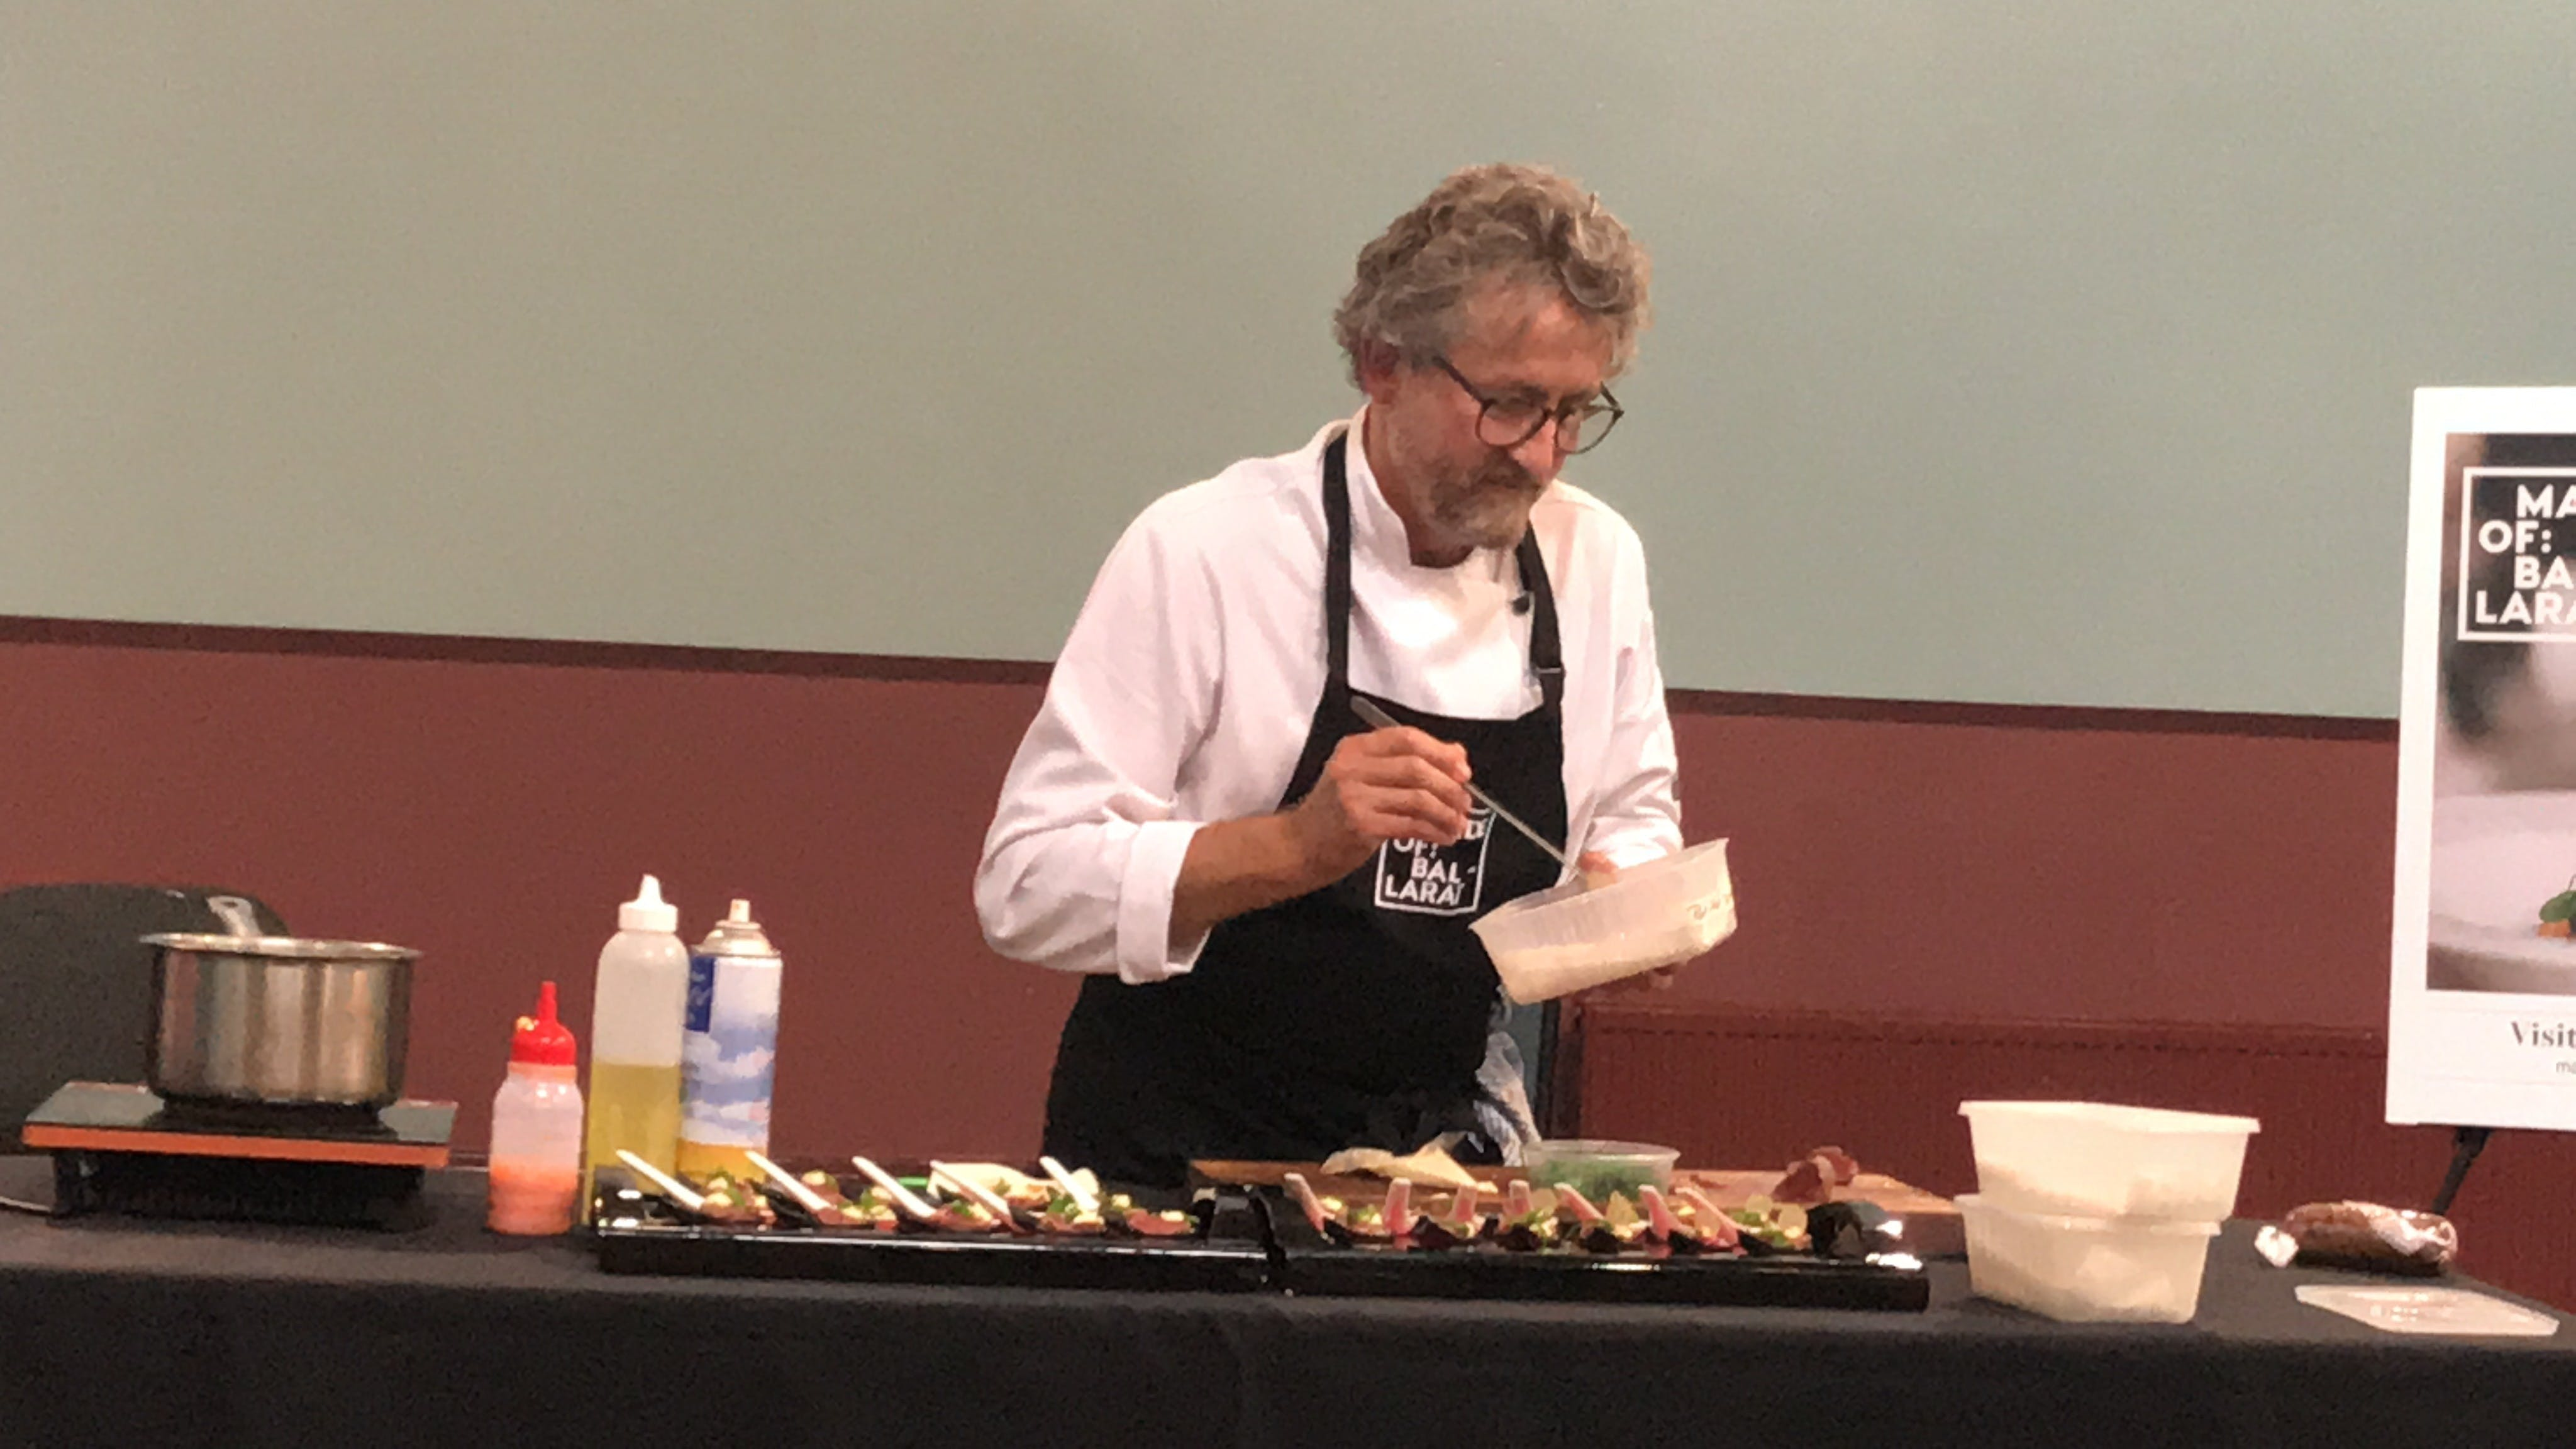 Masterclasses with Peter Ford Catering 321 Cider at Orchards at Springvale Farm - Tweed Heads Accommodation